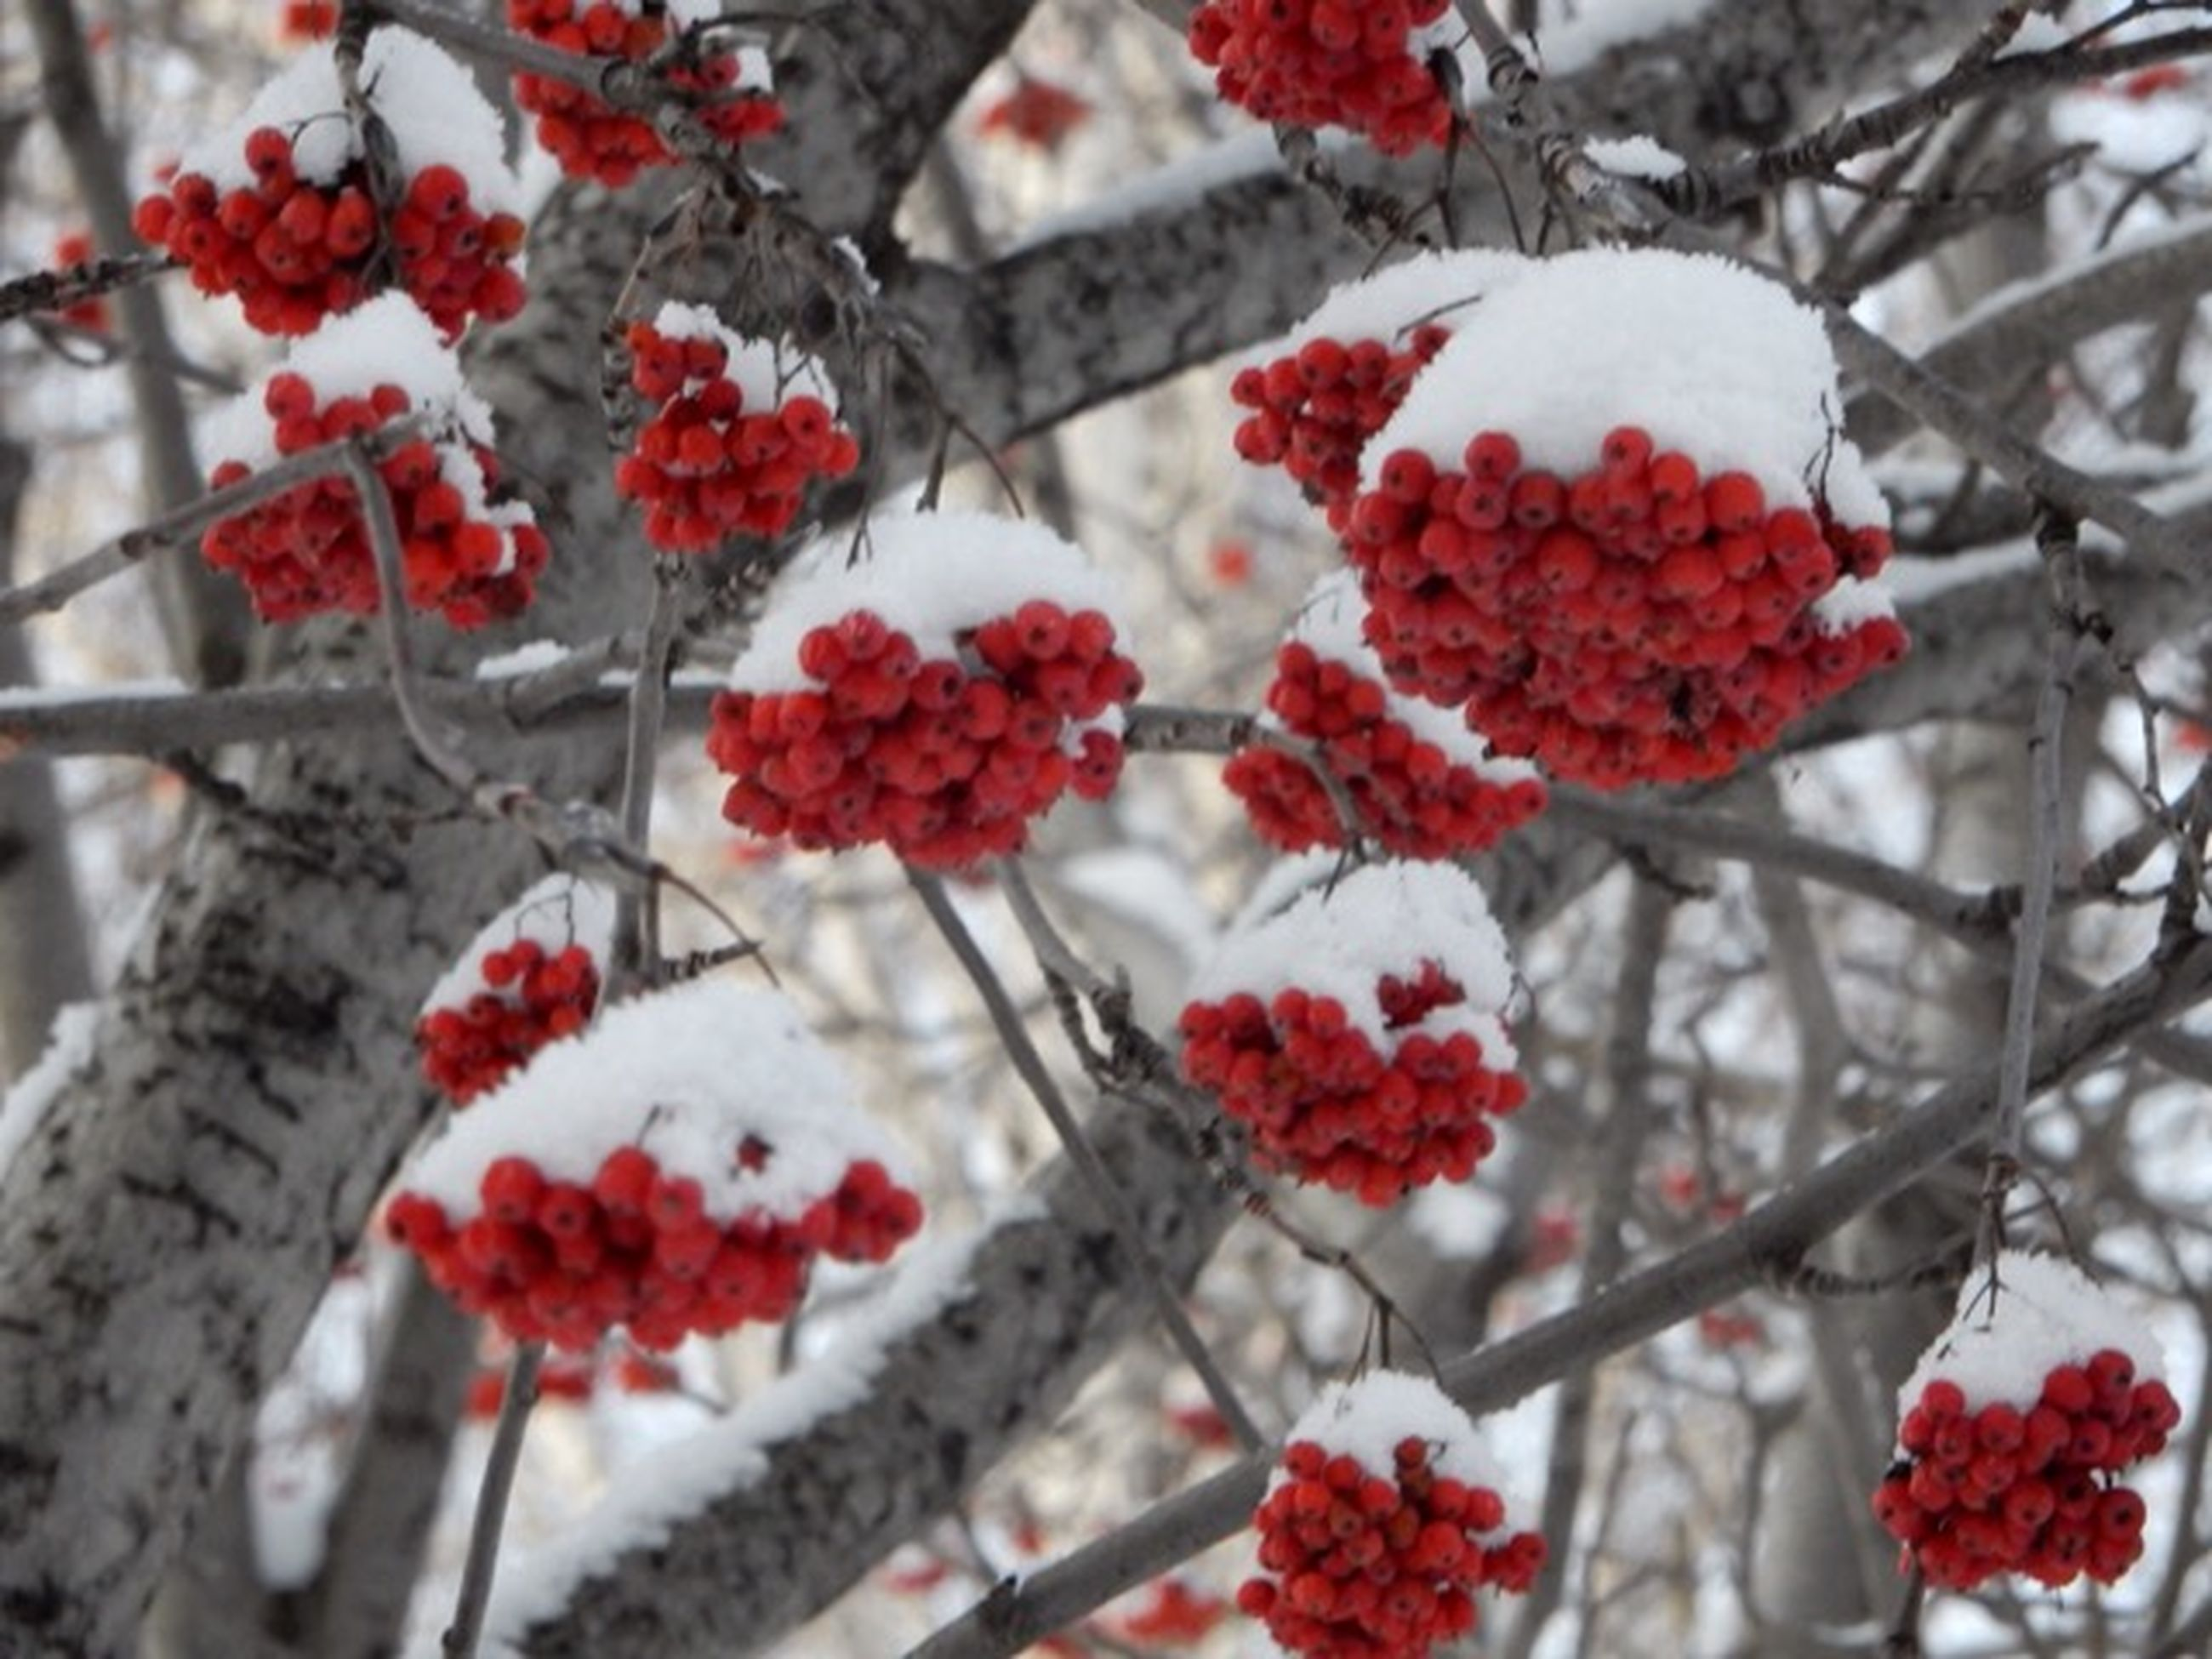 red, branch, freshness, flower, tree, growth, focus on foreground, nature, close-up, fruit, beauty in nature, season, berry fruit, berry, cherry tree, day, winter, fragility, cold temperature, outdoors